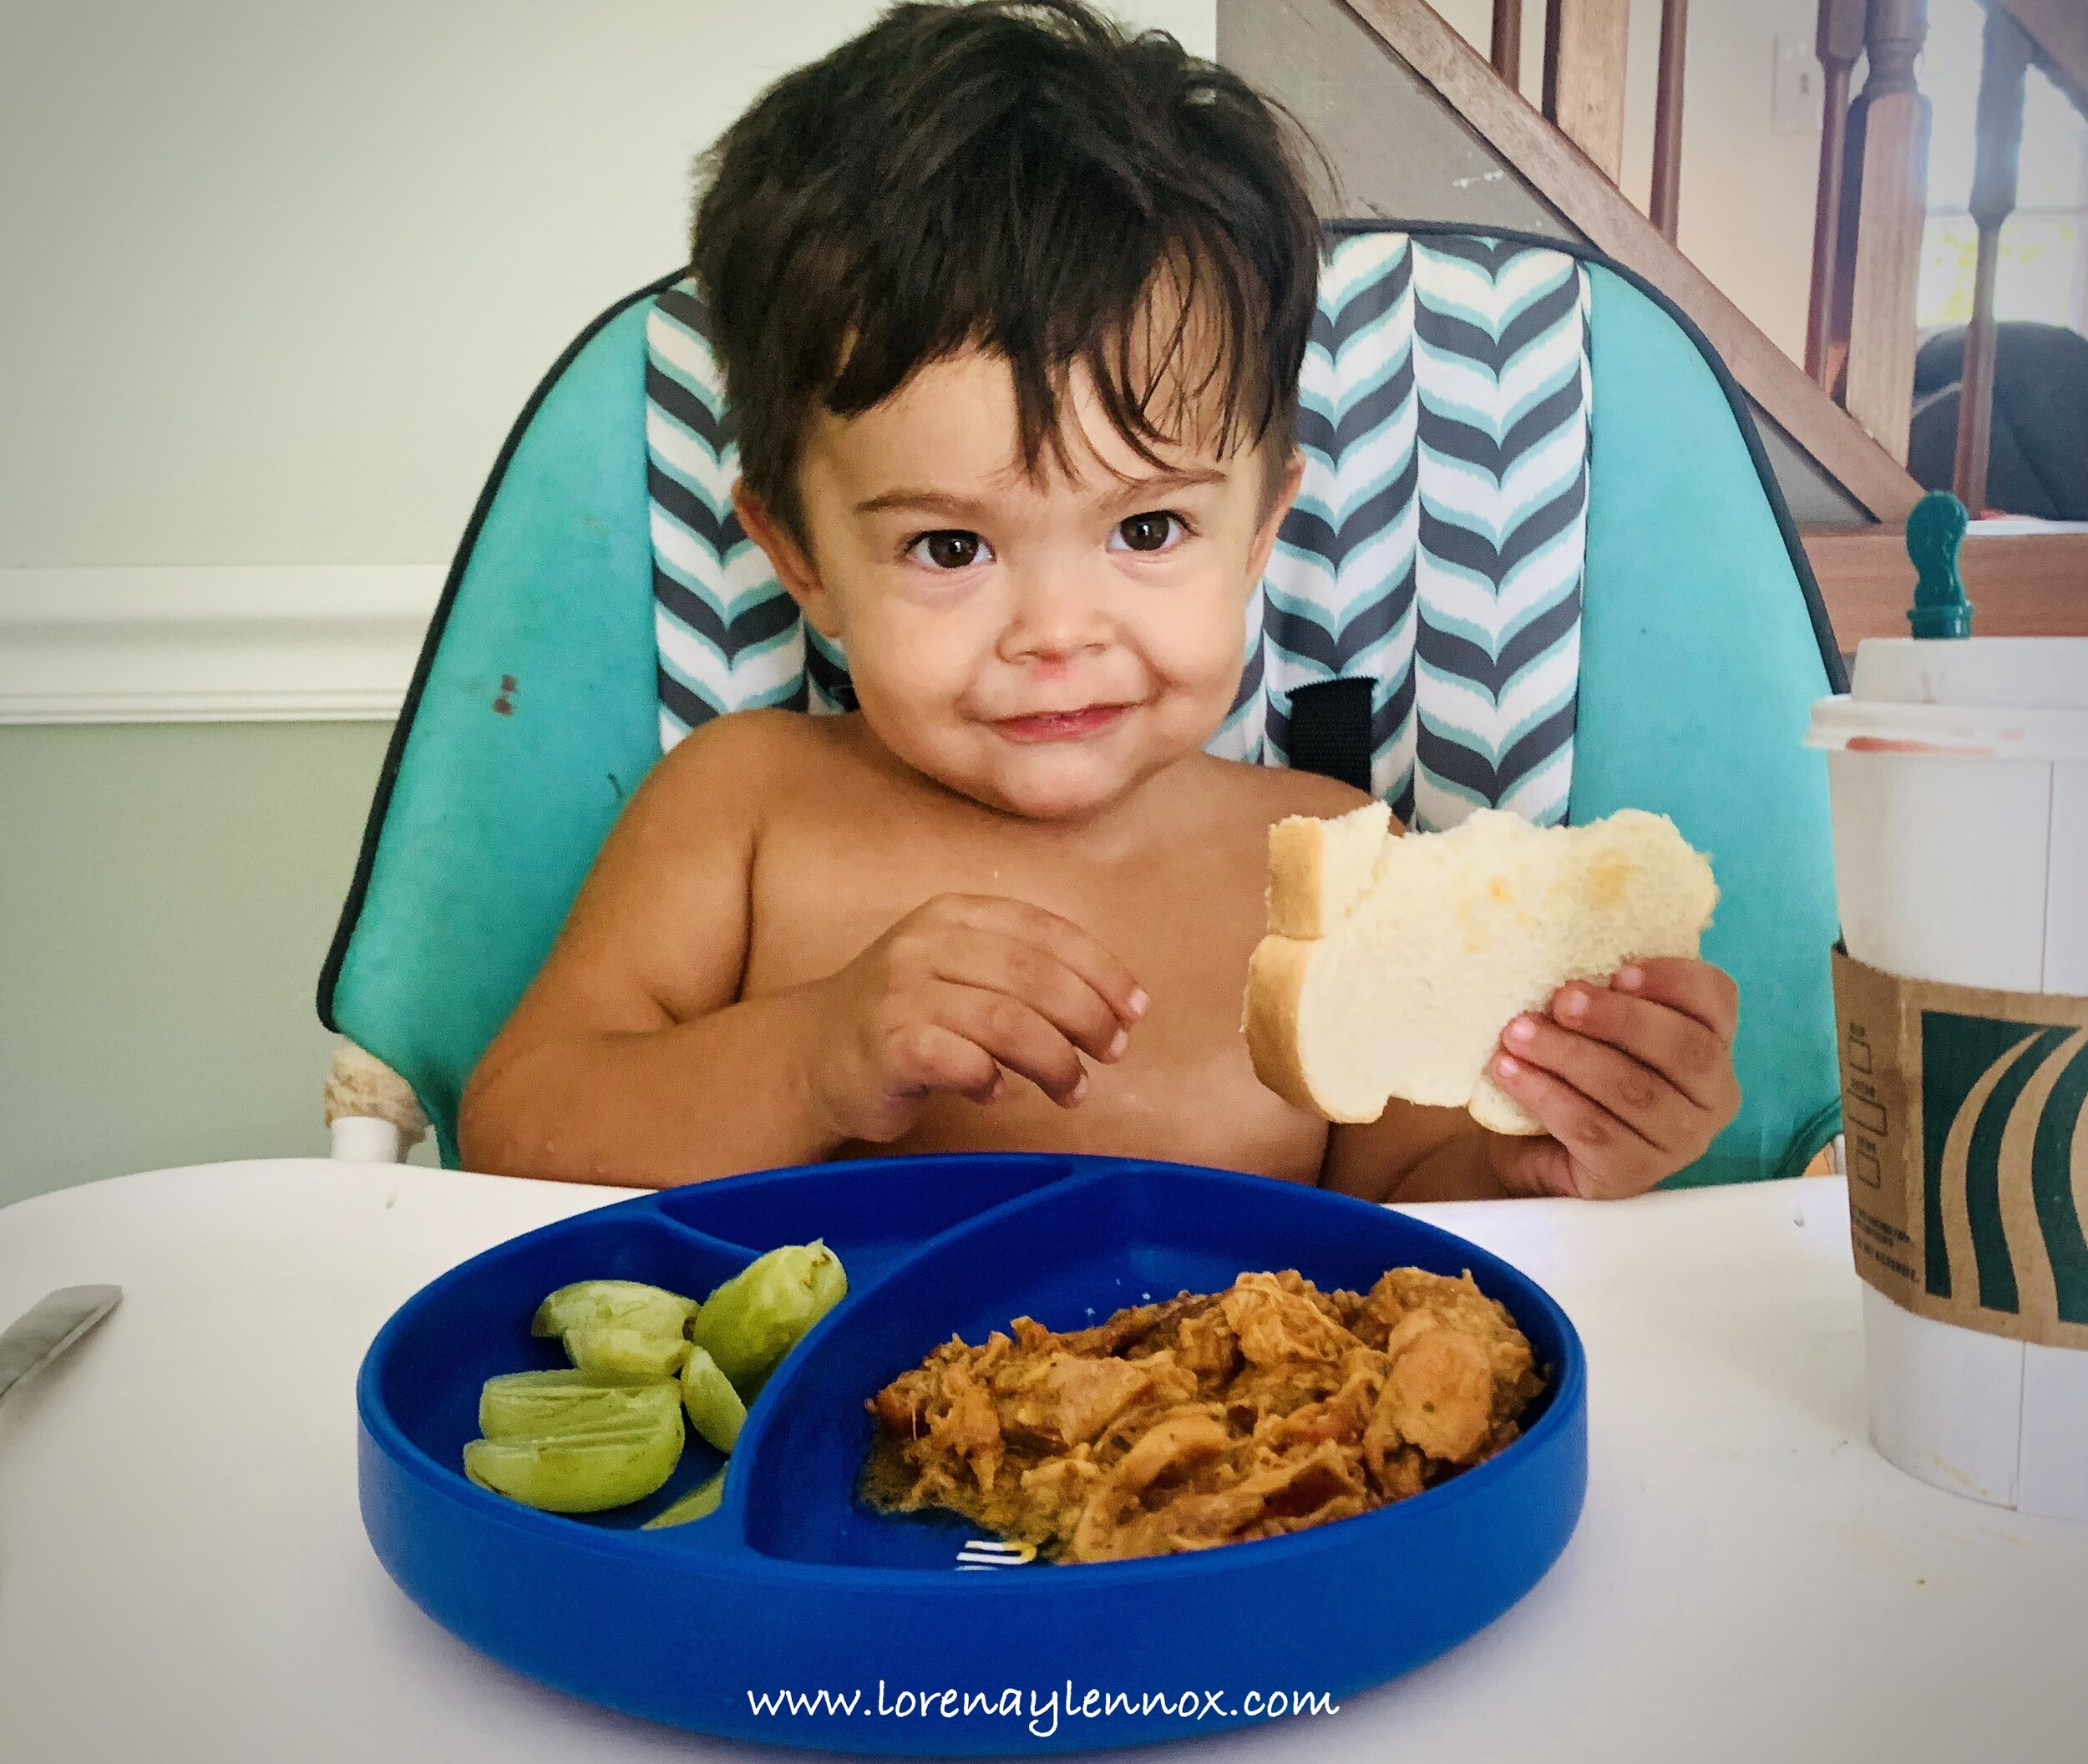 What were some of your favorite products for baby led weaning